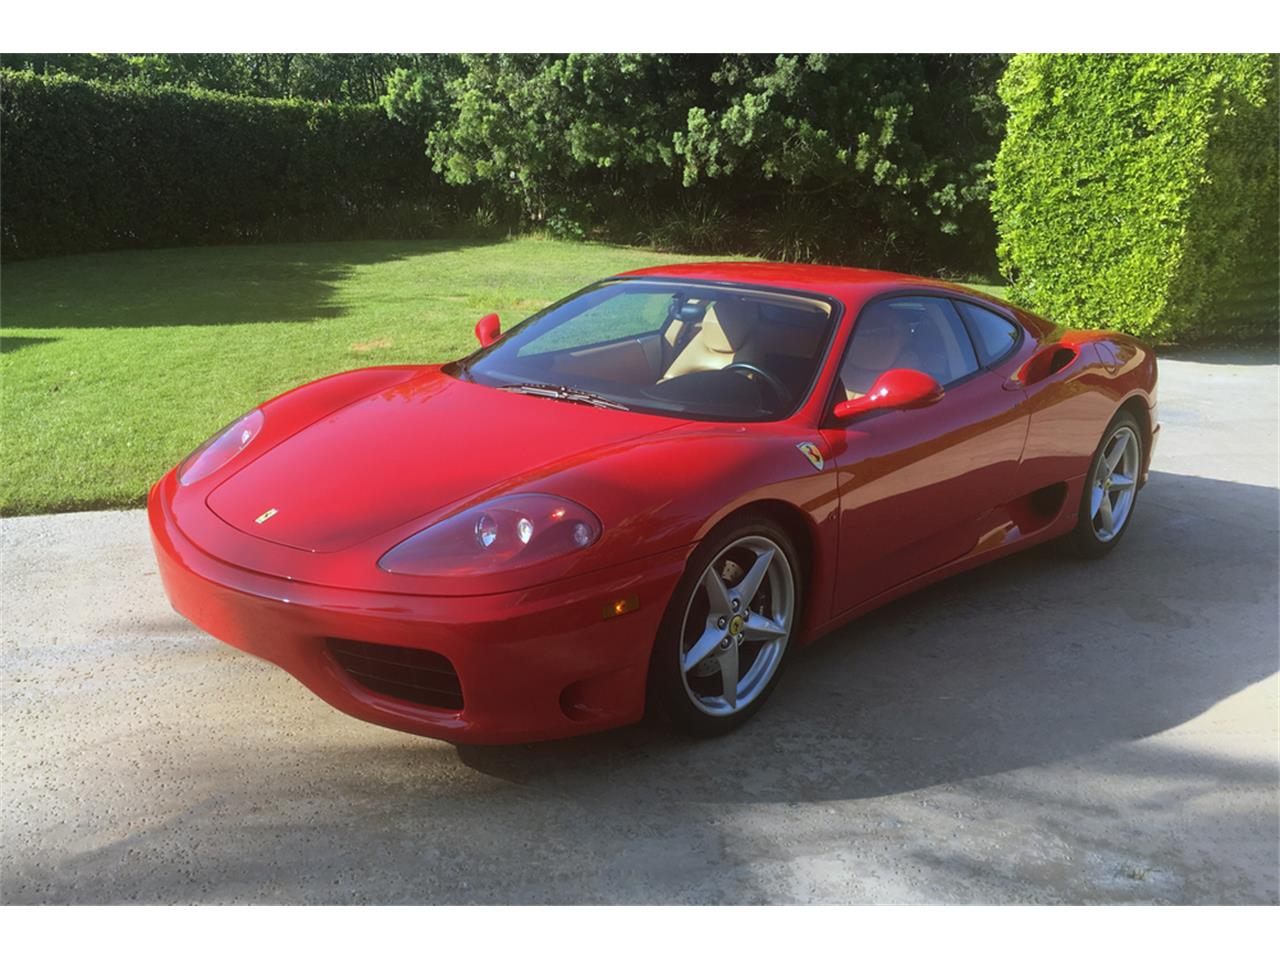 Large Picture of '99 360 Modena F1 - QUSV